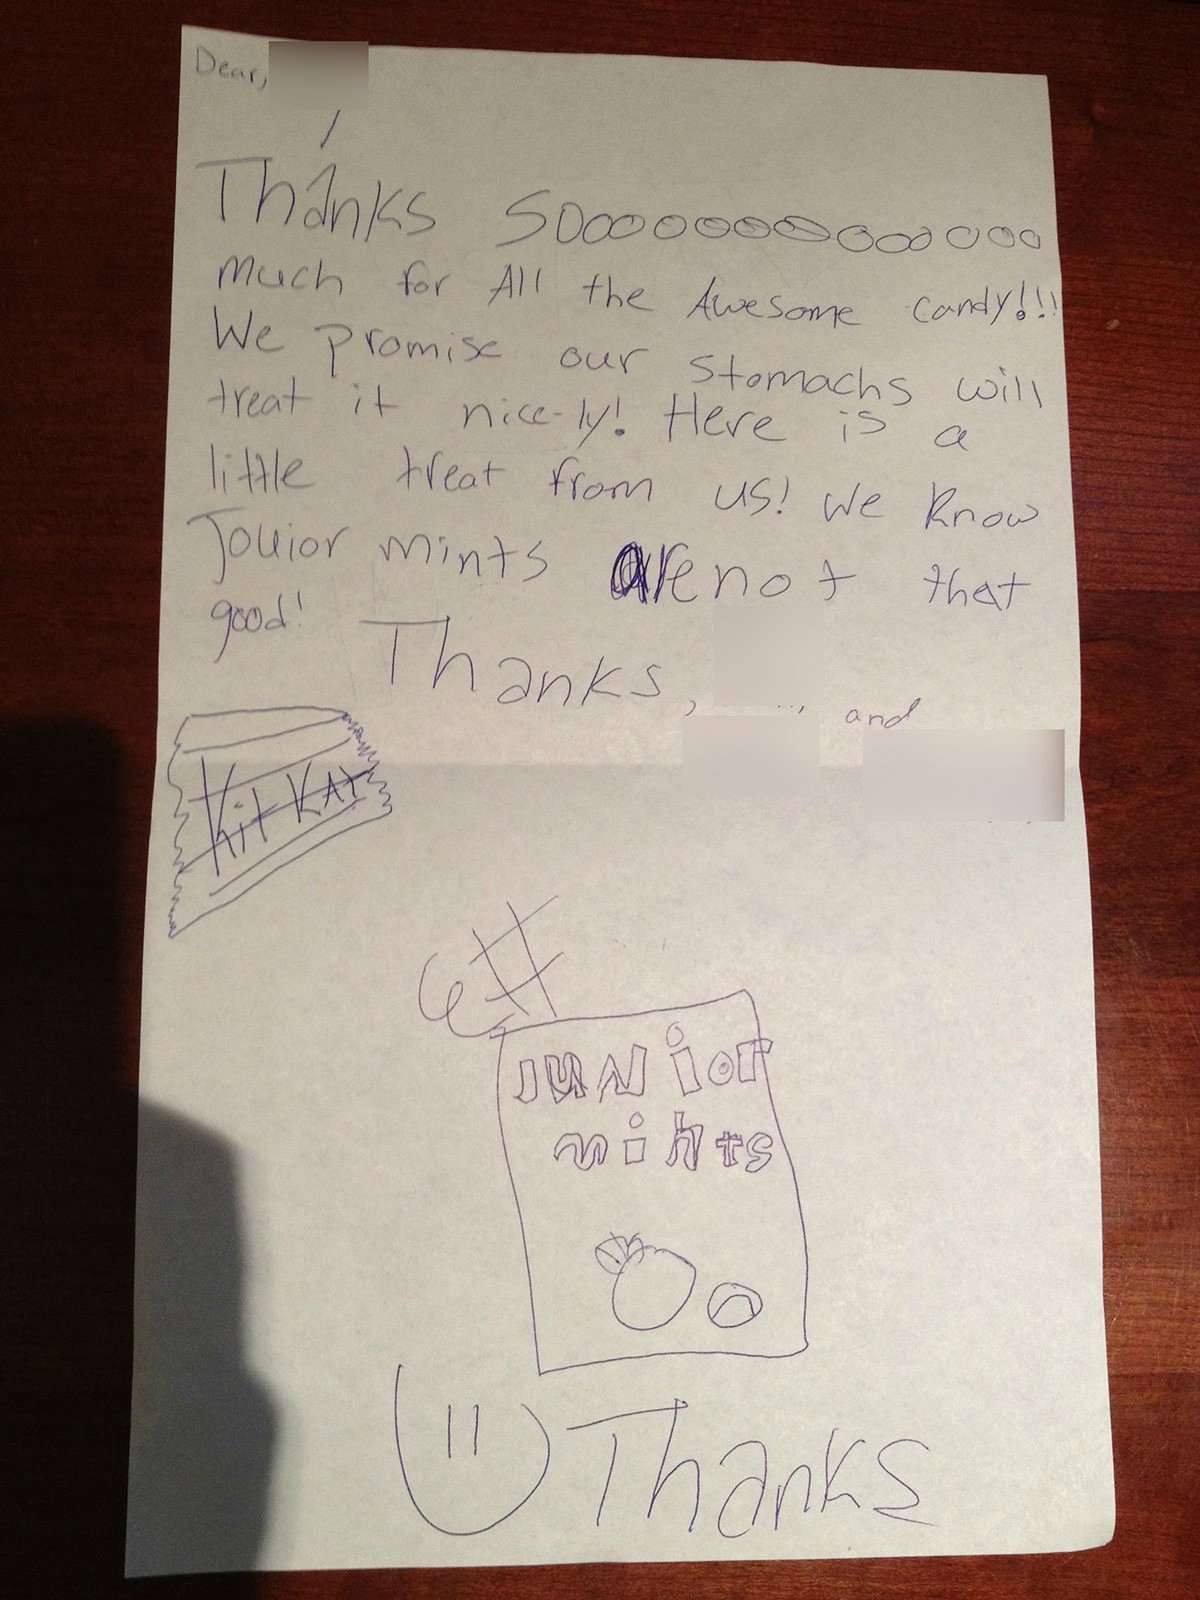 Funny Thank You Messages Elegant Funny Thank You Letters From Kids that are totally Spot